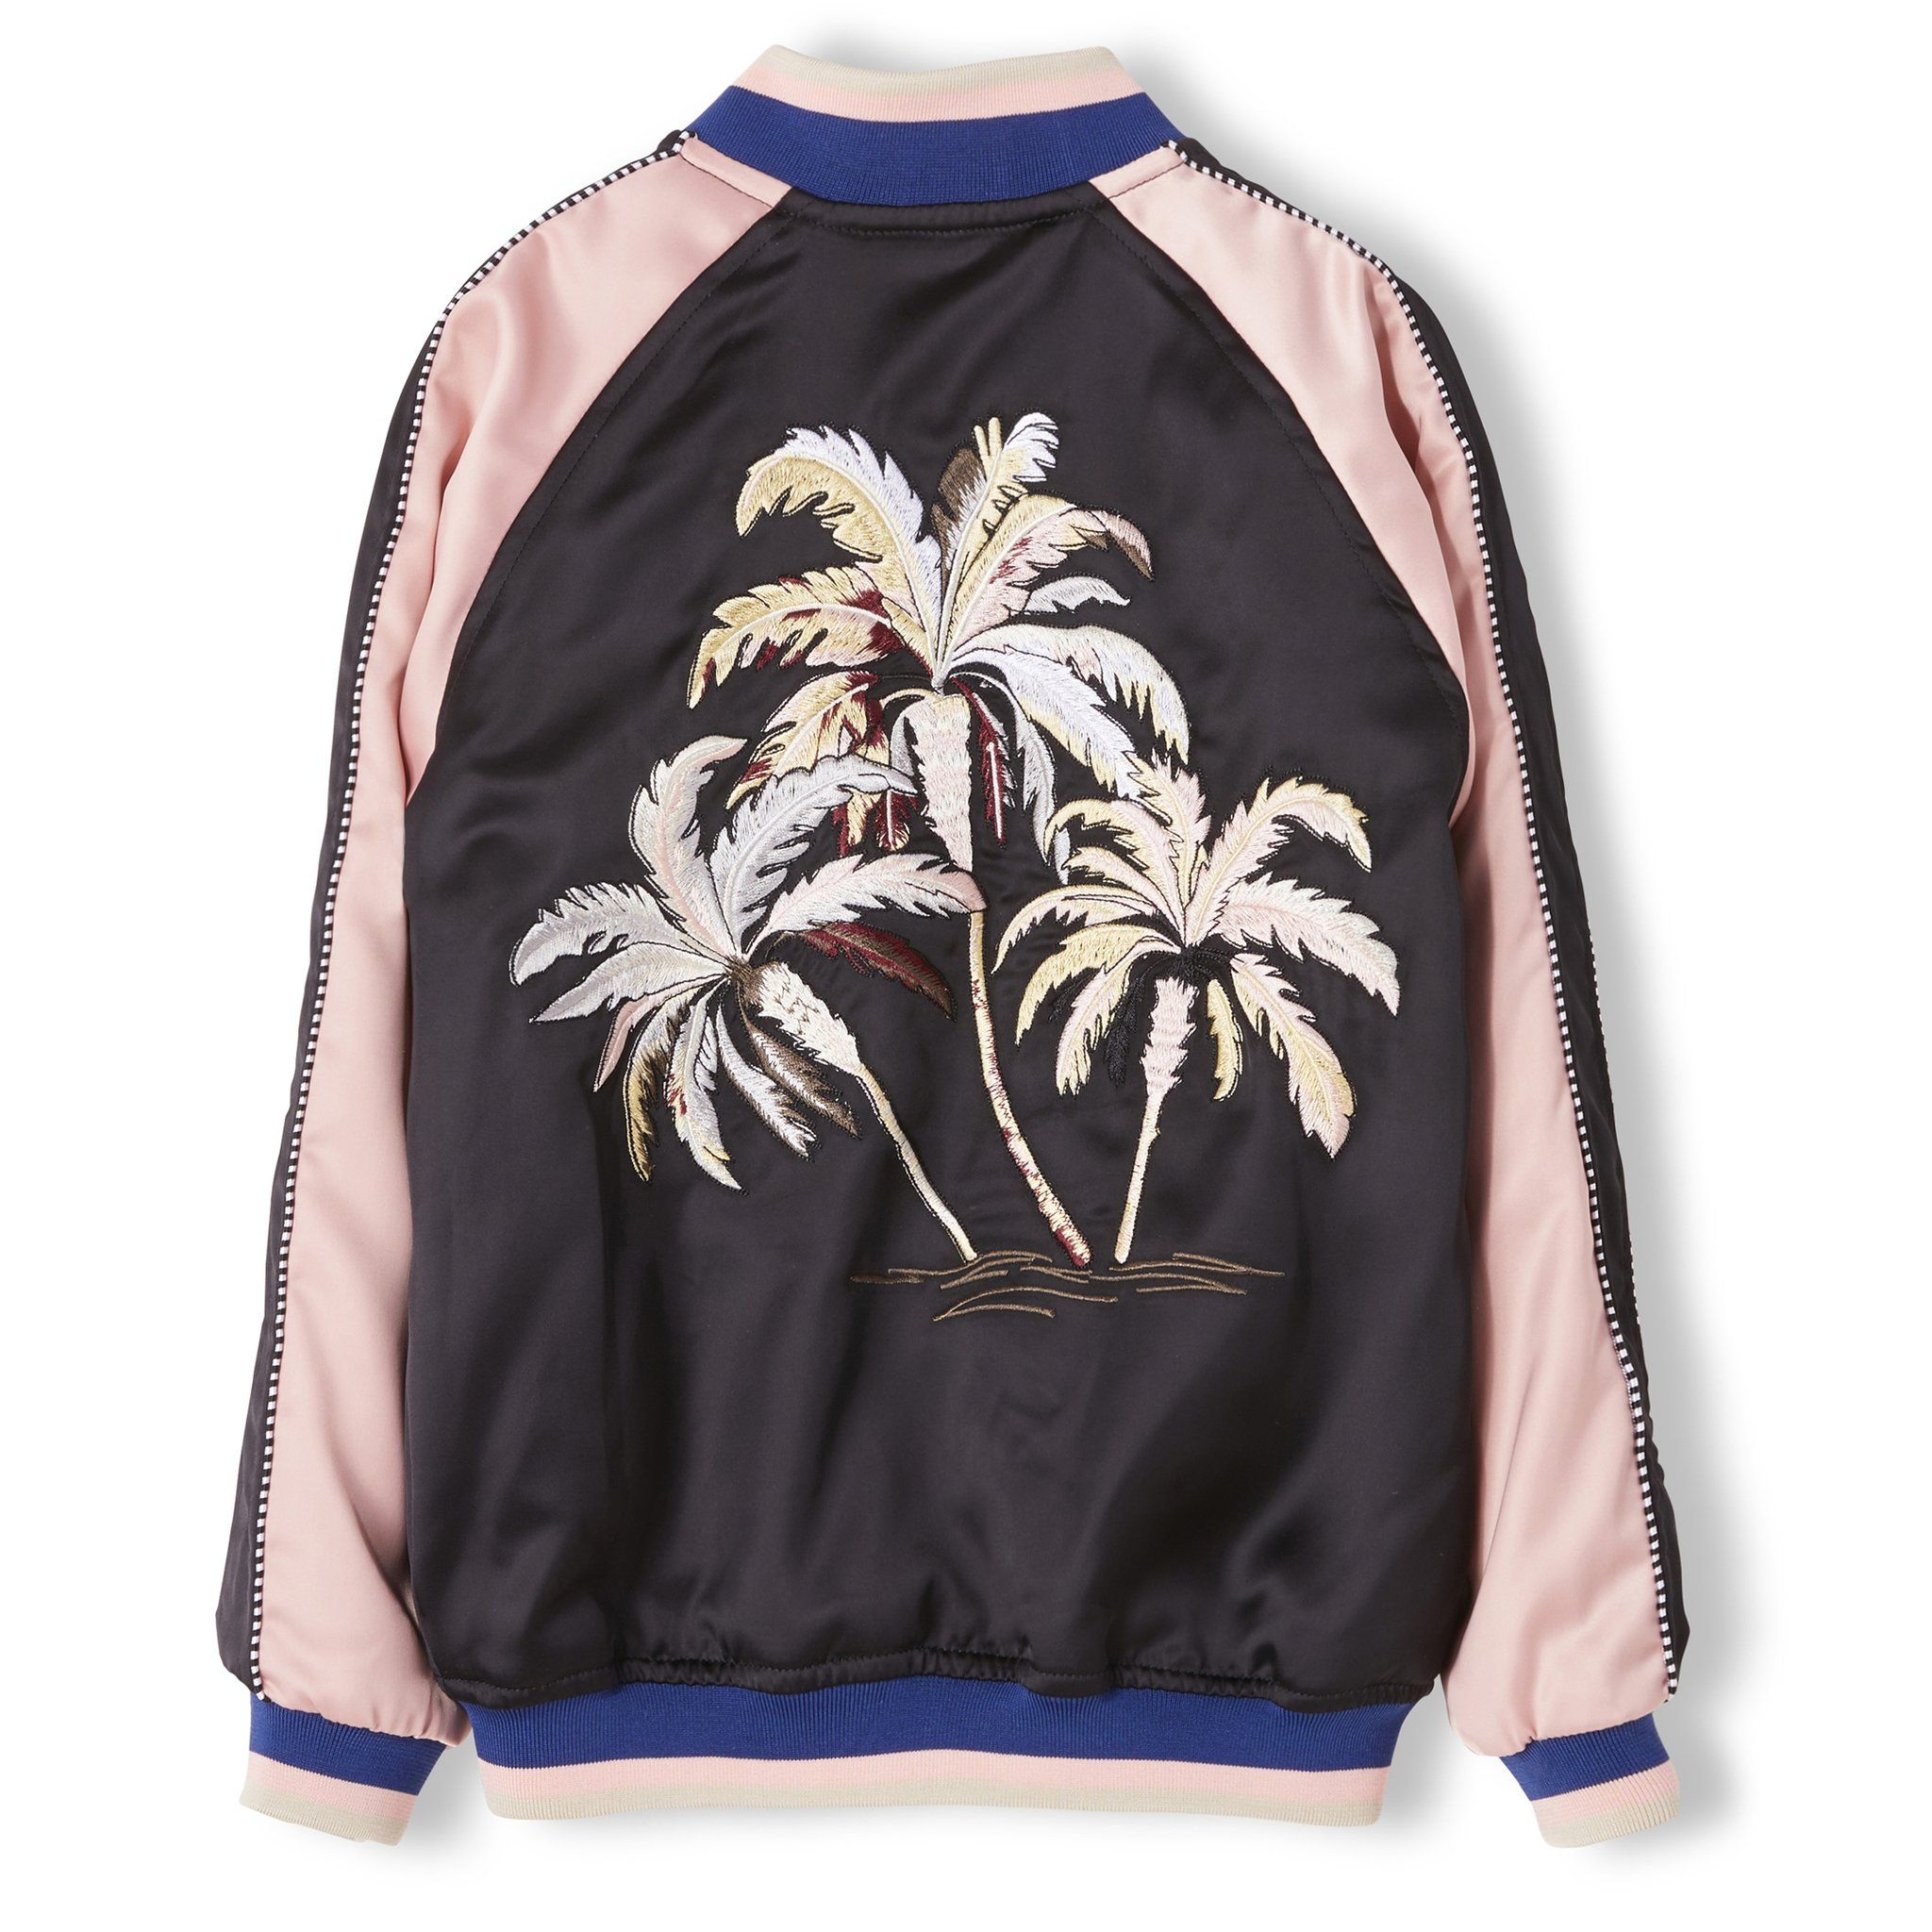 PRETENDER Summer Black Palm Tree - Unisex Varsity Jacket – Finger in the nose